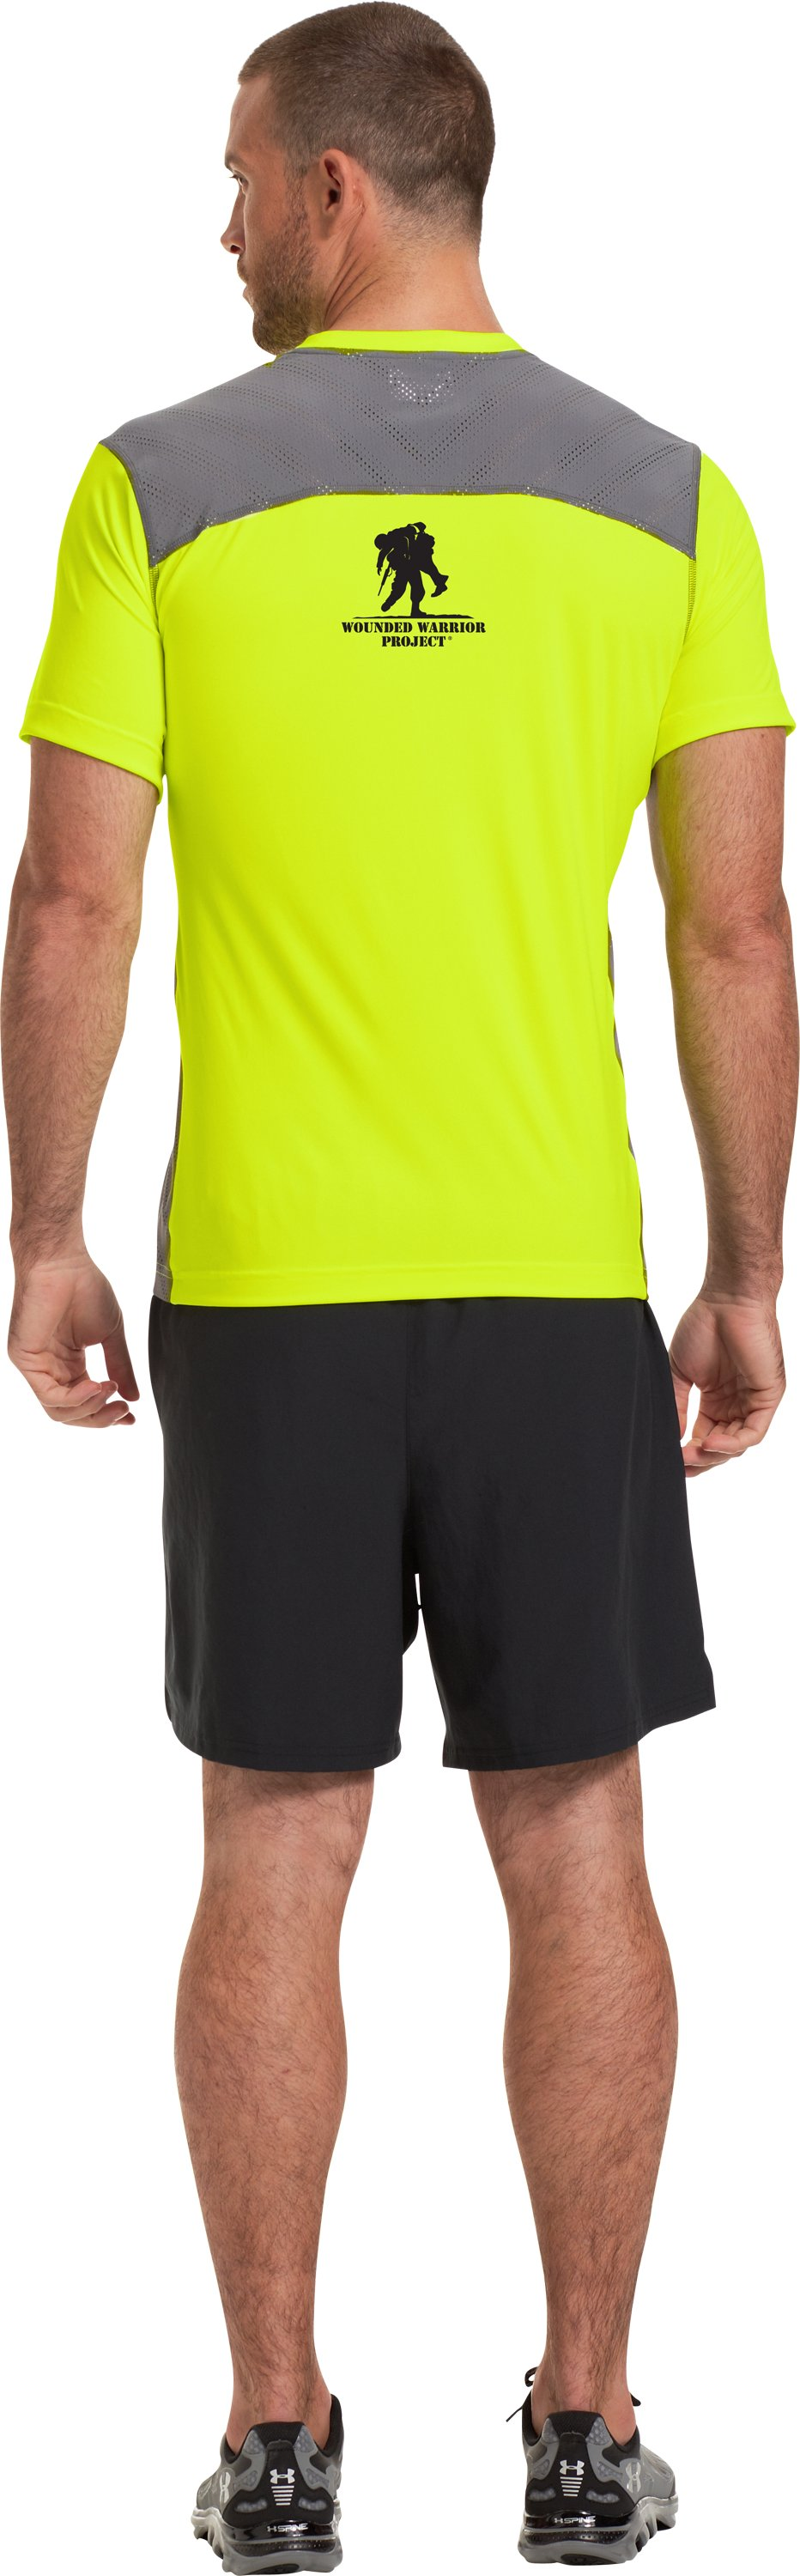 Men's WWP ArmourVent™ Short Sleeve T-Shirt, High-Vis Yellow, zoomed image